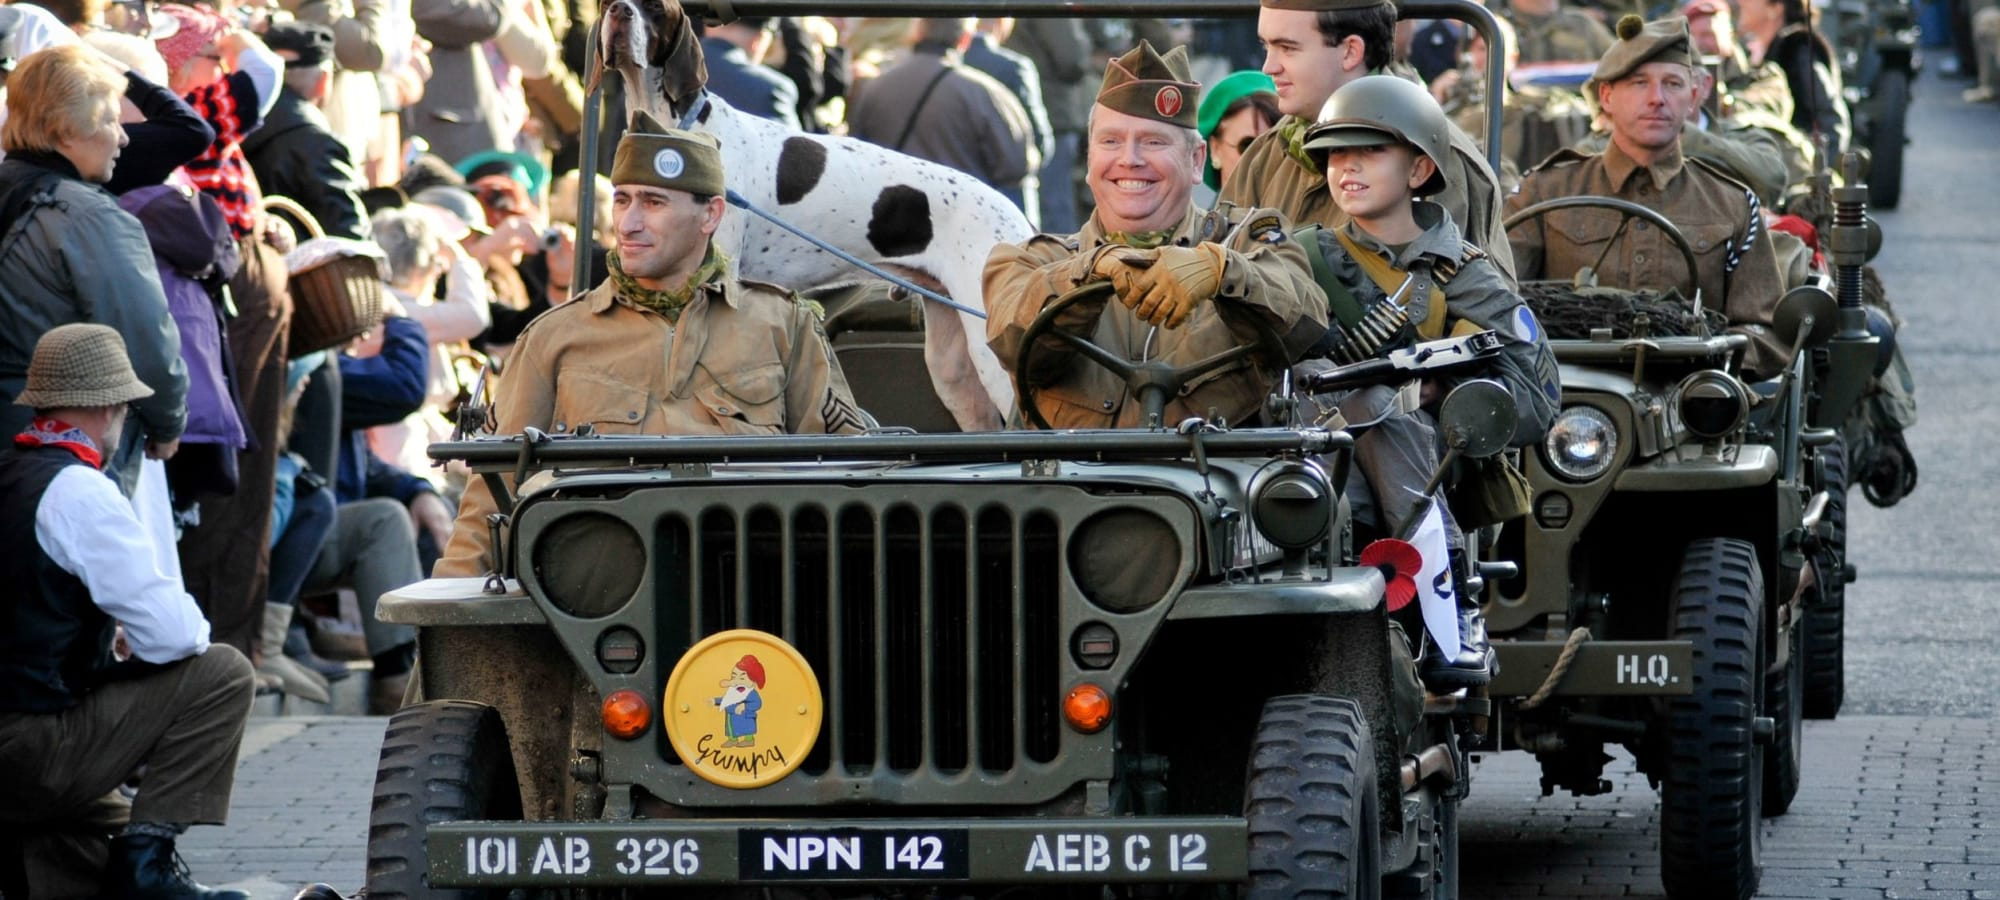 North Yorkshire Moors Railway confirms cancellation of  Railway In Wartime event